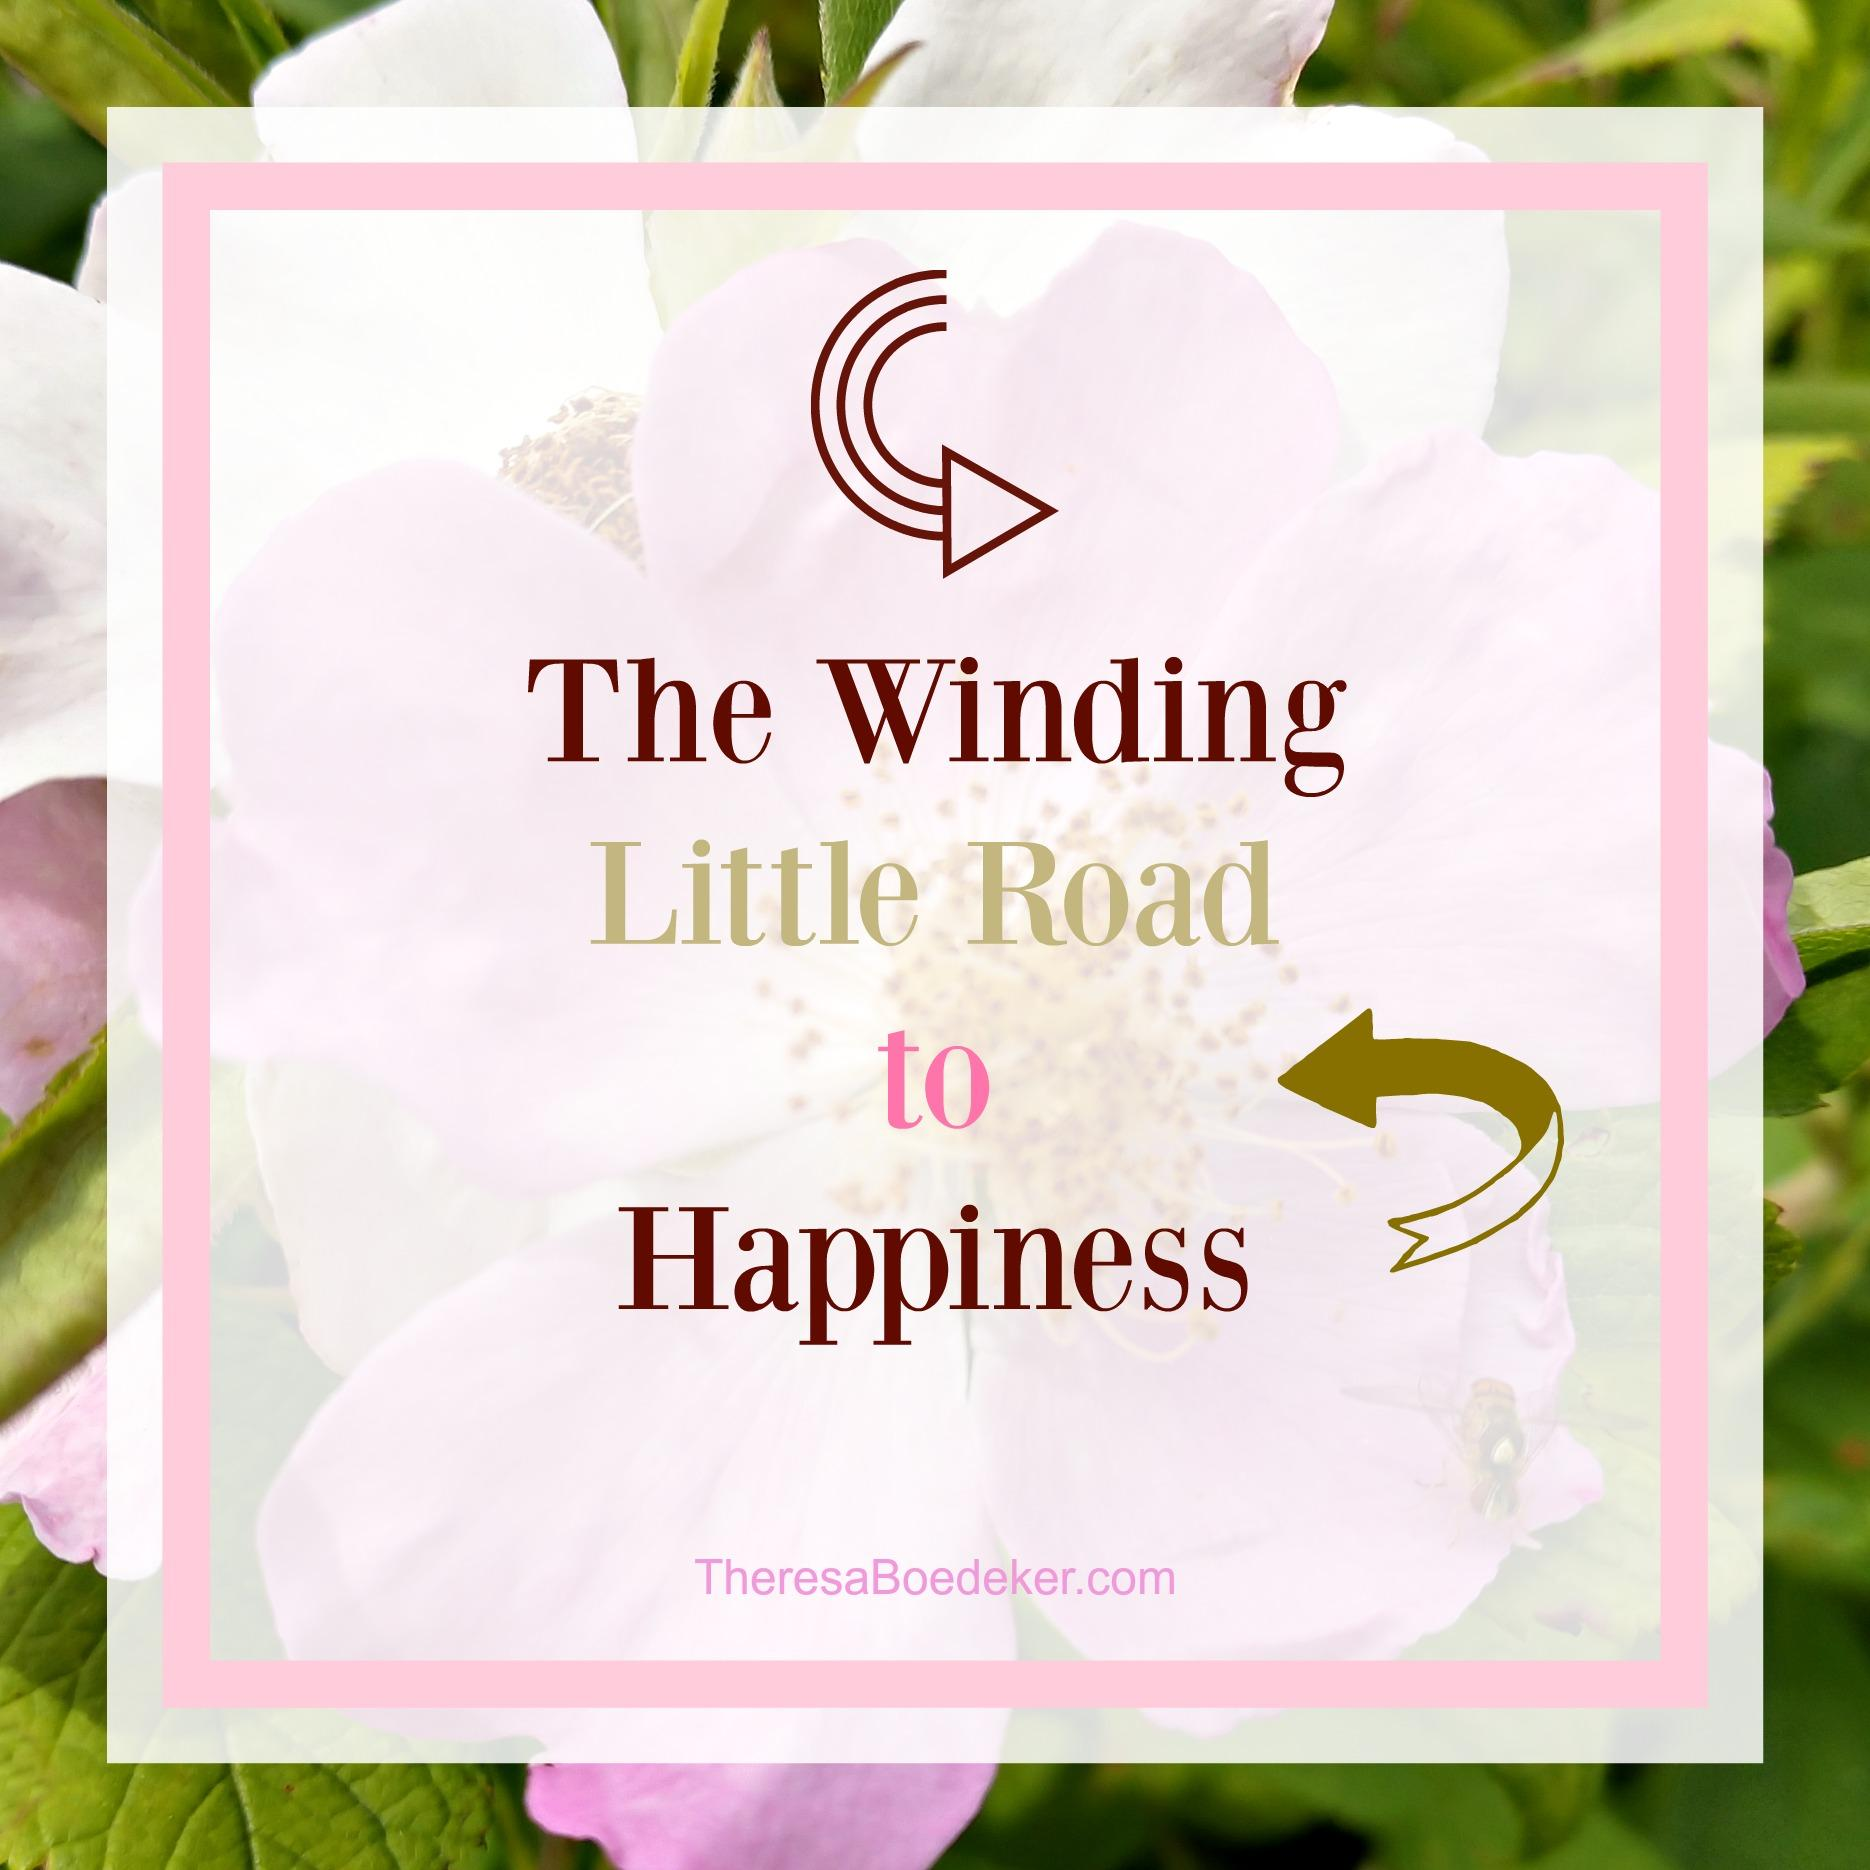 Learn to embrace the winding little road to happiness.